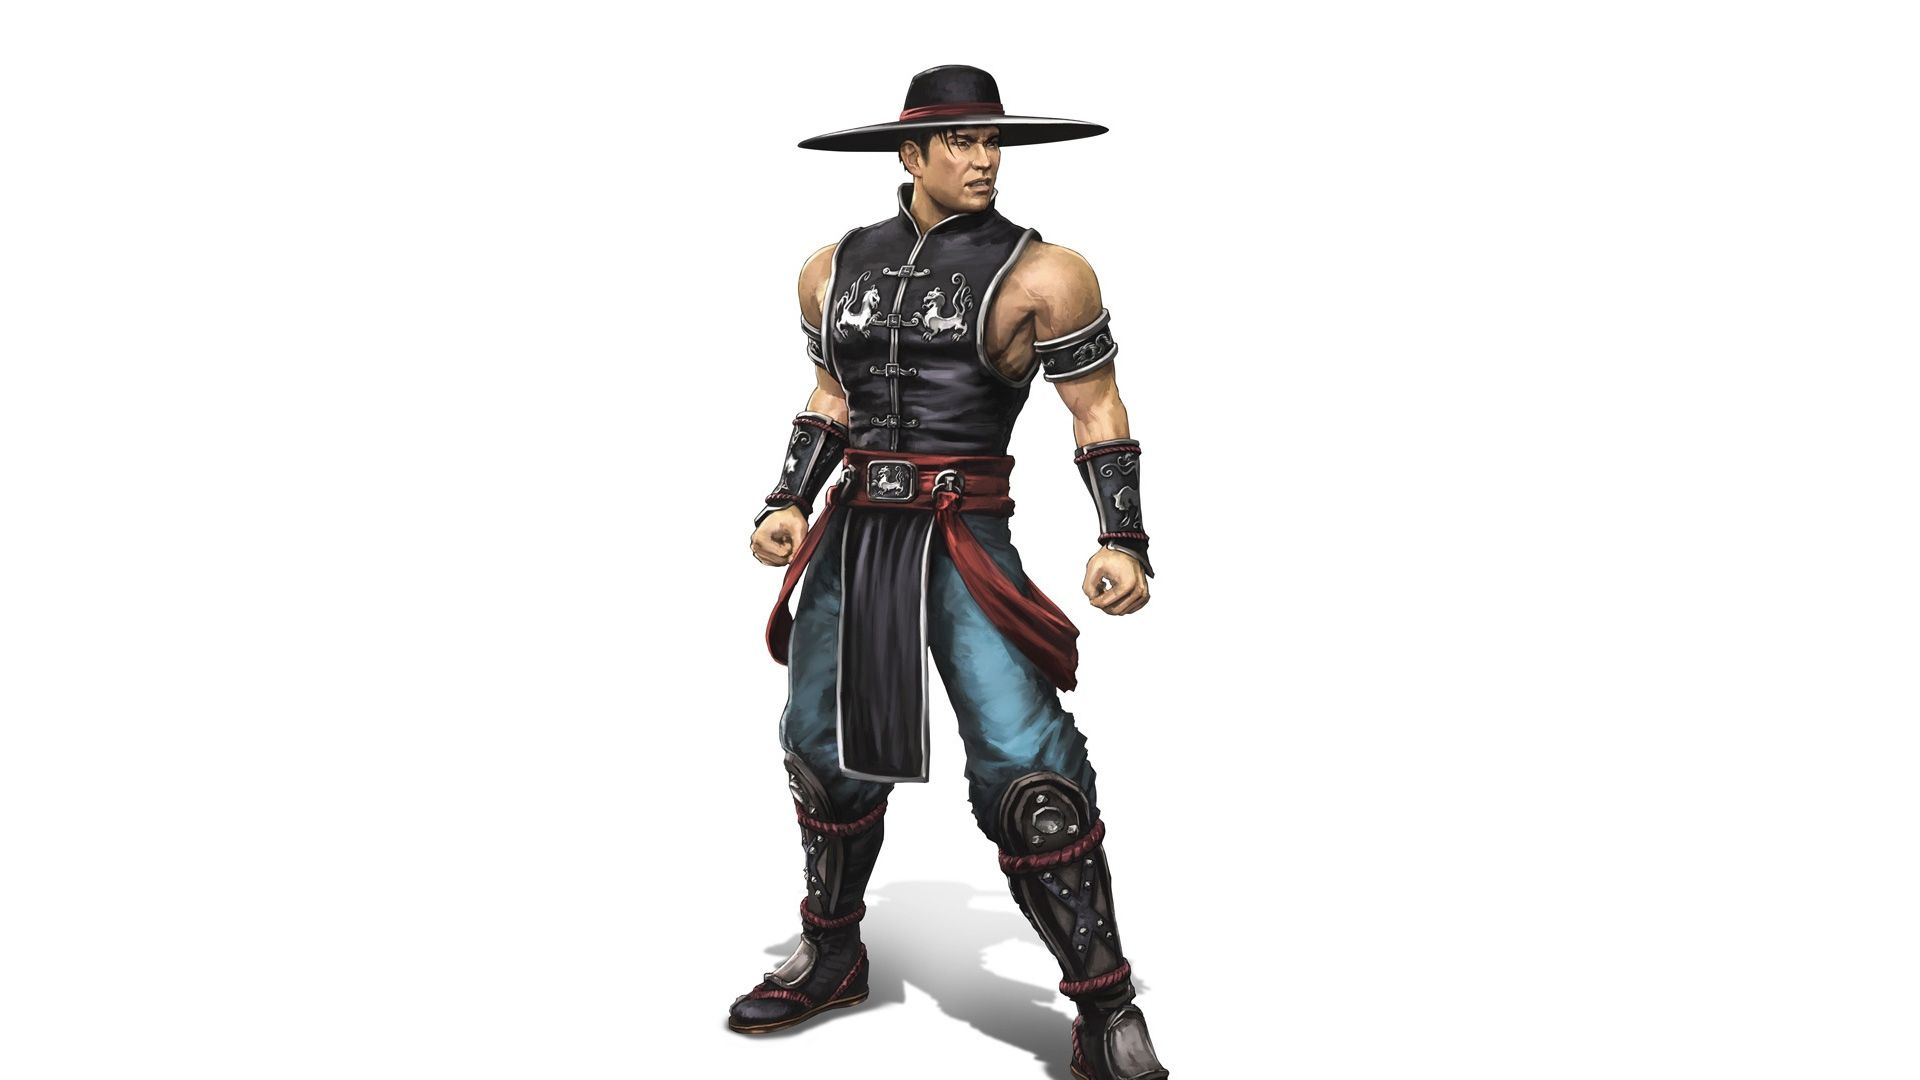 New Mortal Kombat Fighter Character Hat Wallpaper Kuff Games Mortal Kombat Mortal Kombat Characters Character